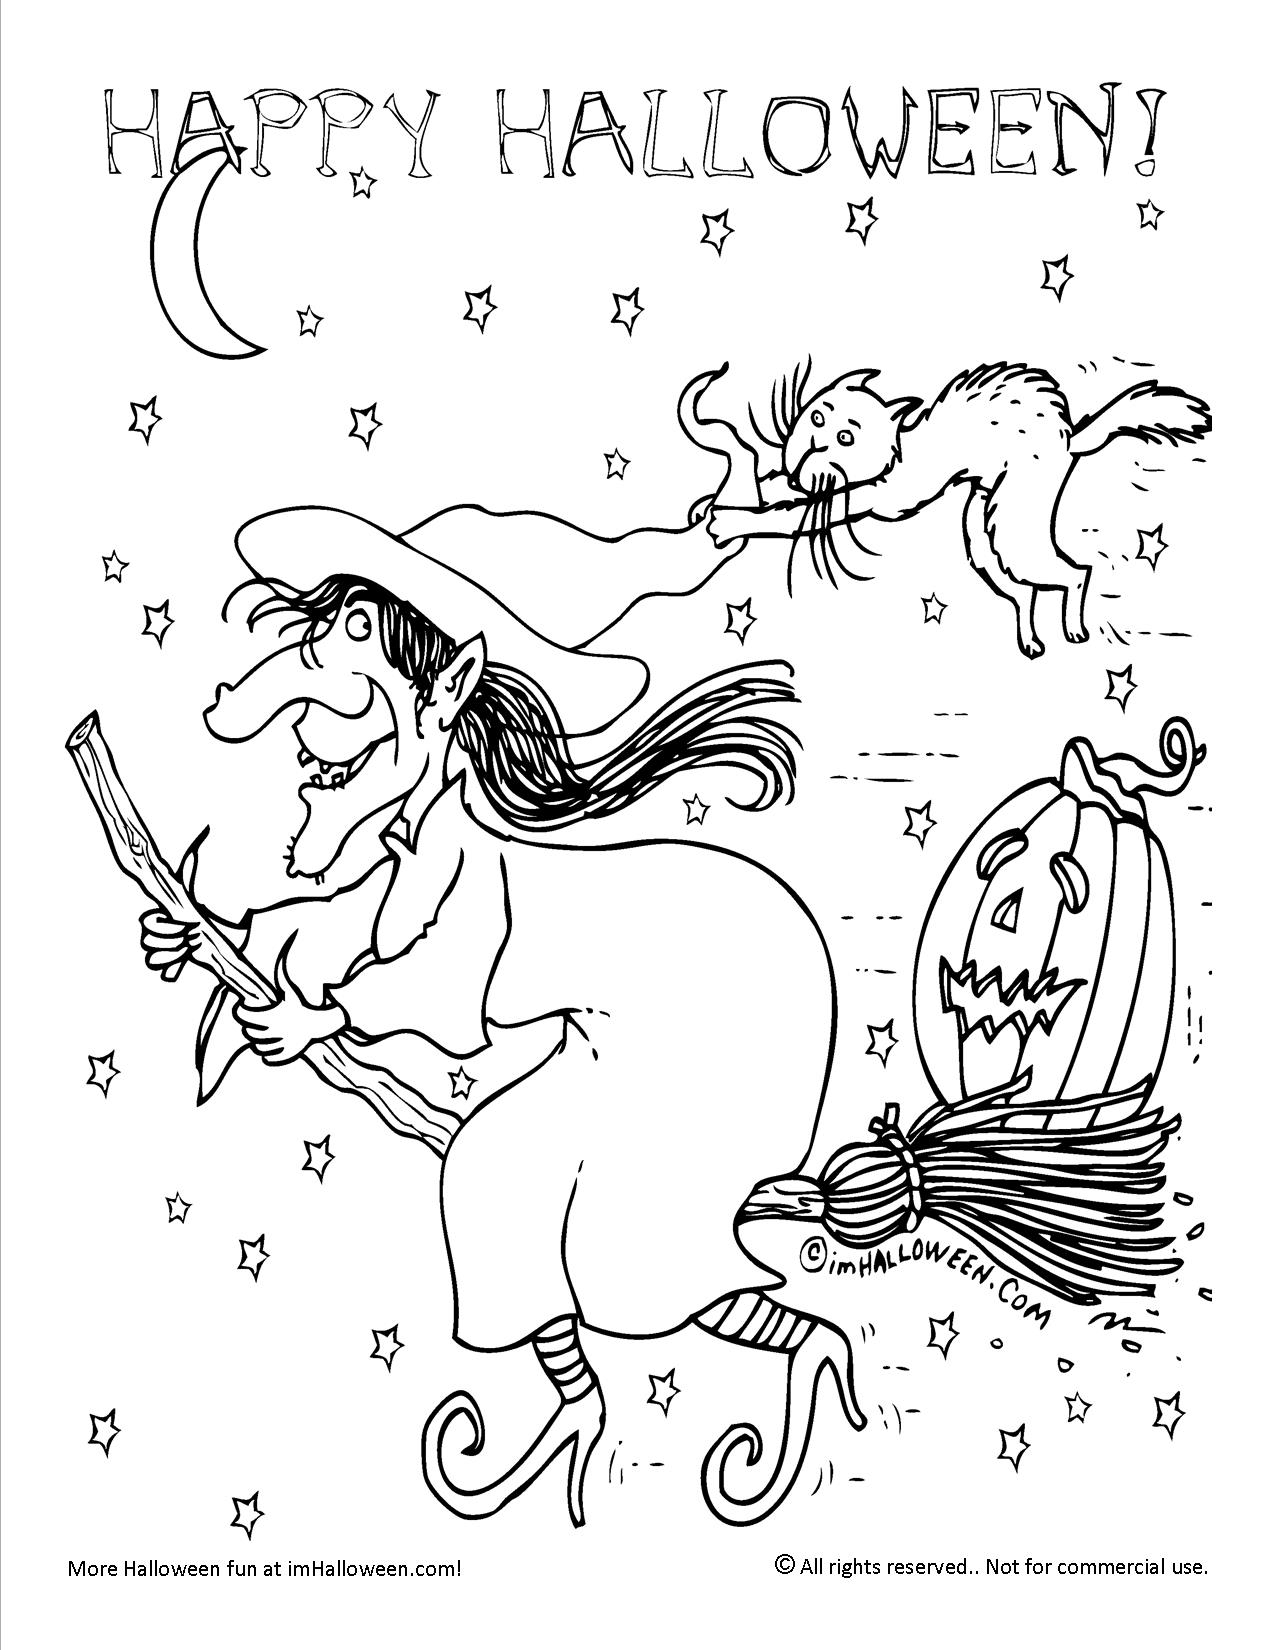 Color the Halloween Witch